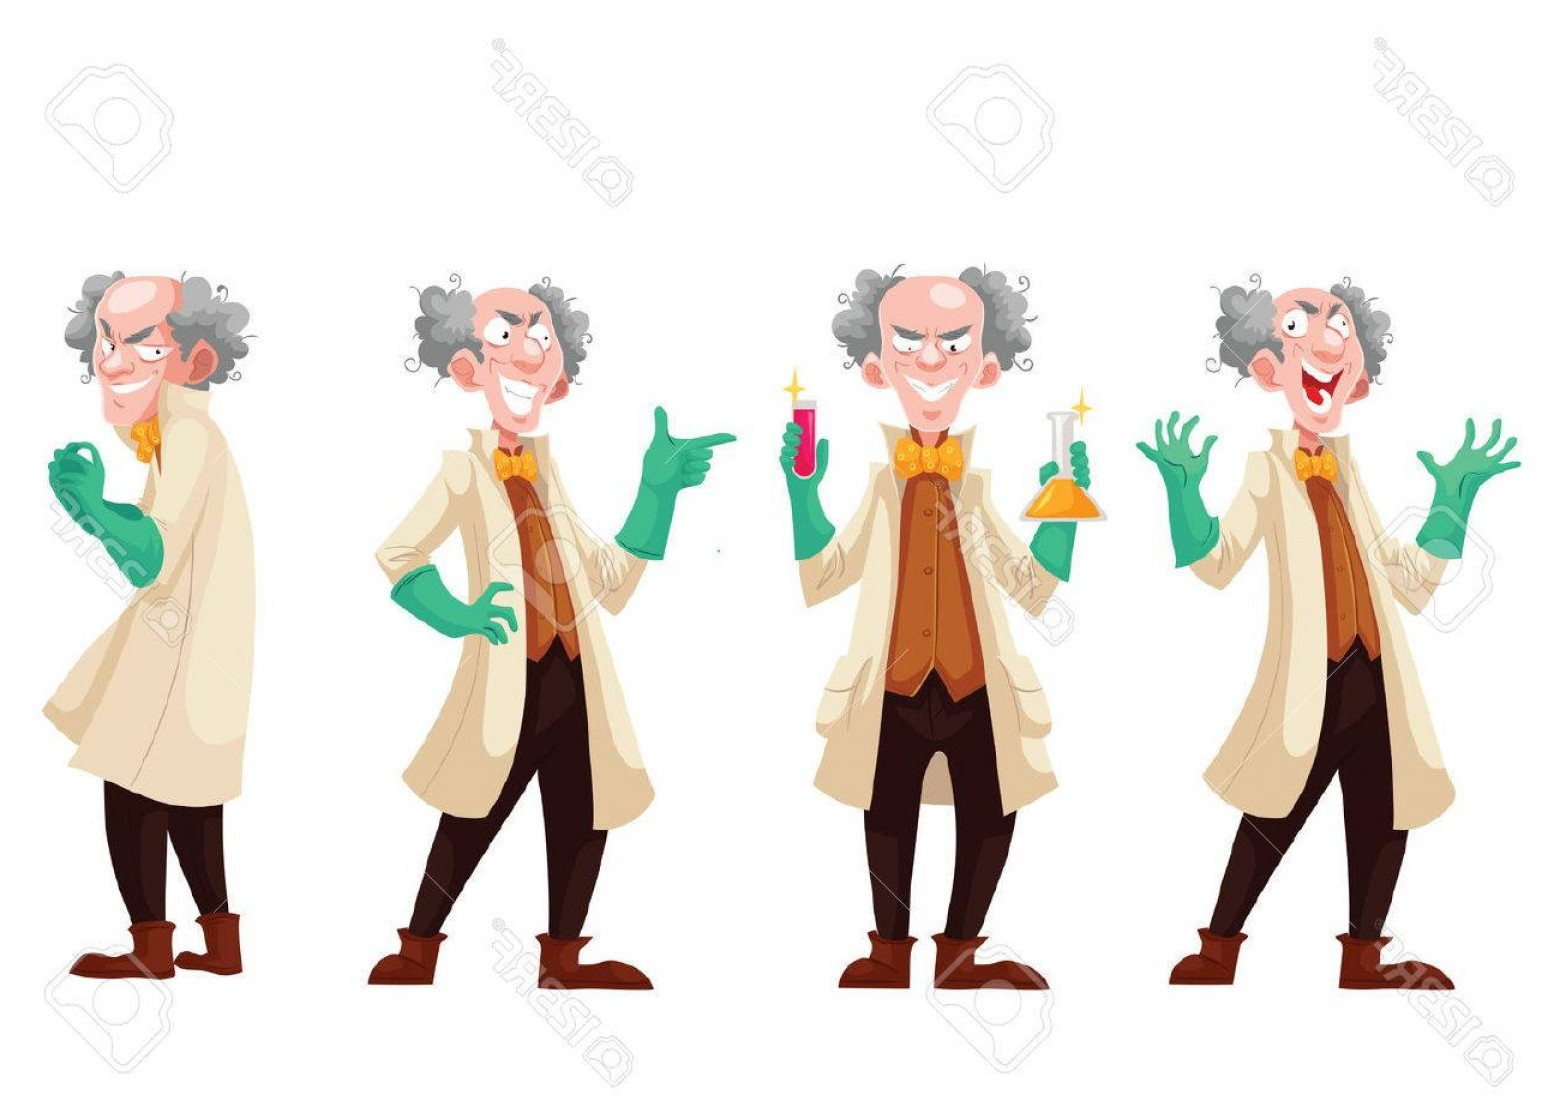 Lab Coat Cartoon Vector: Photostock Vector Mad Professor In Lab Coat And Green Rubber Gloves Cartoon Style Vector Illustration Isolated On Whit